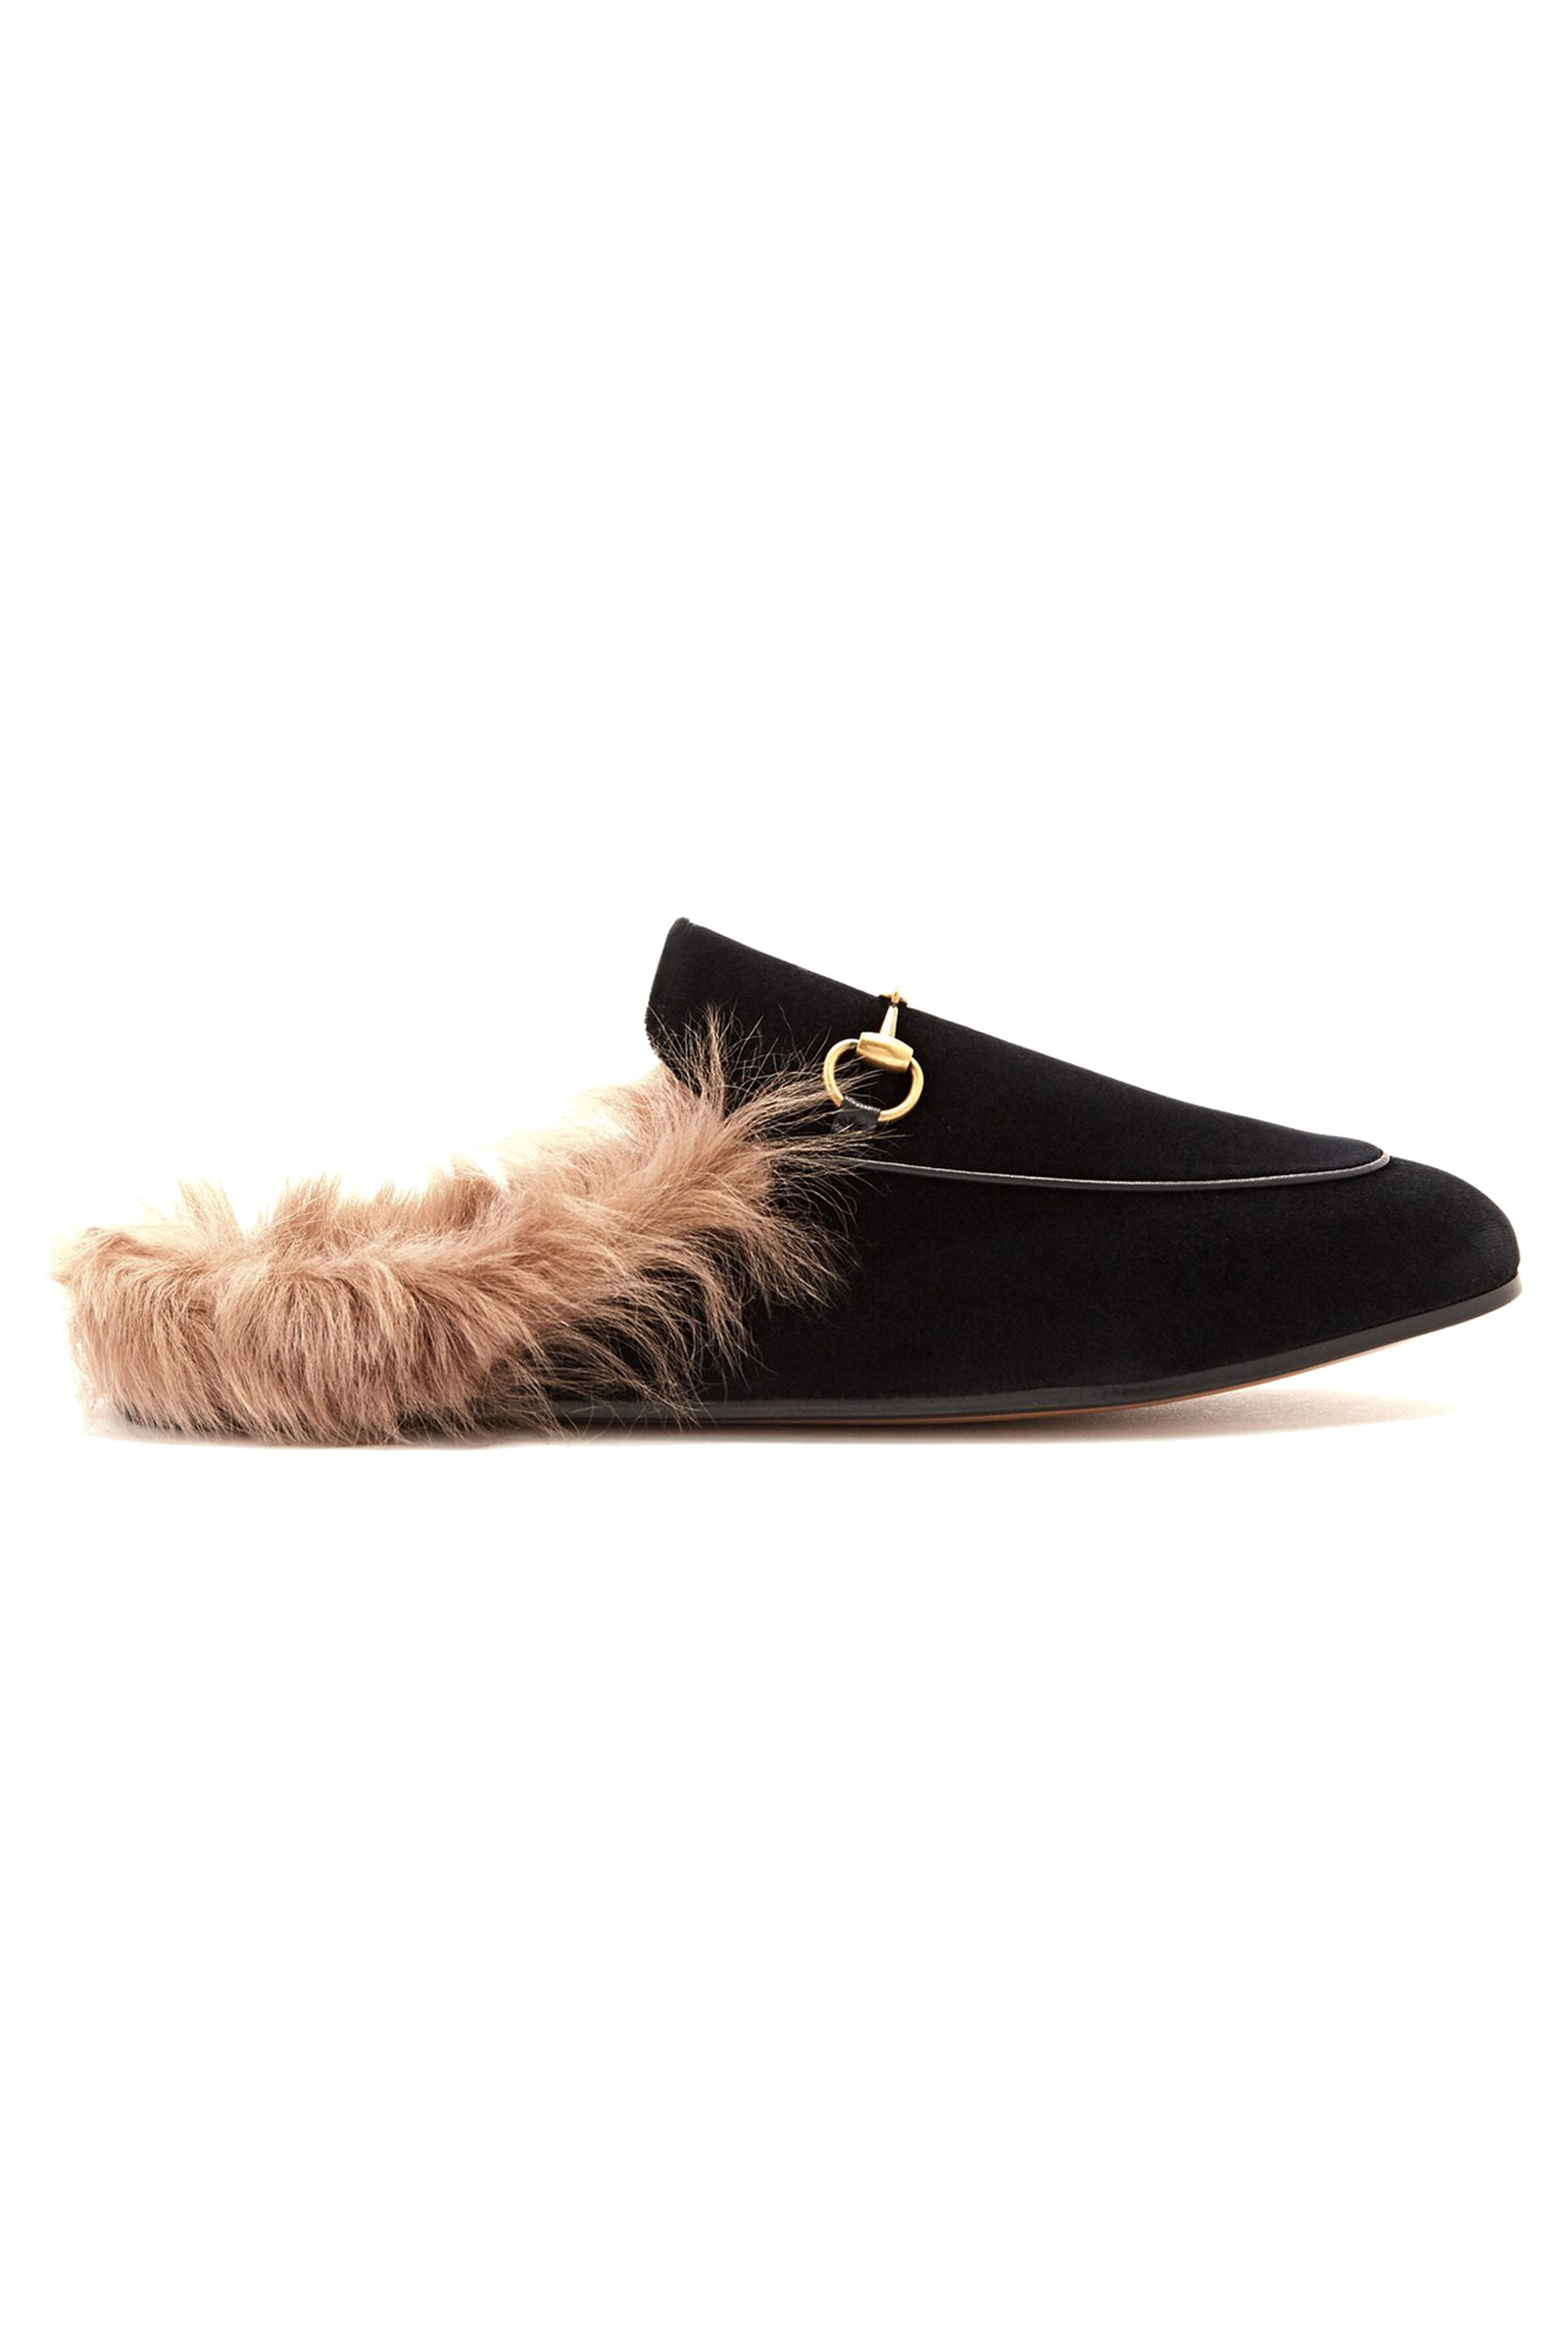 Buy Gucci Princetown Black Velvet Slipper Shoe Online 04512c084